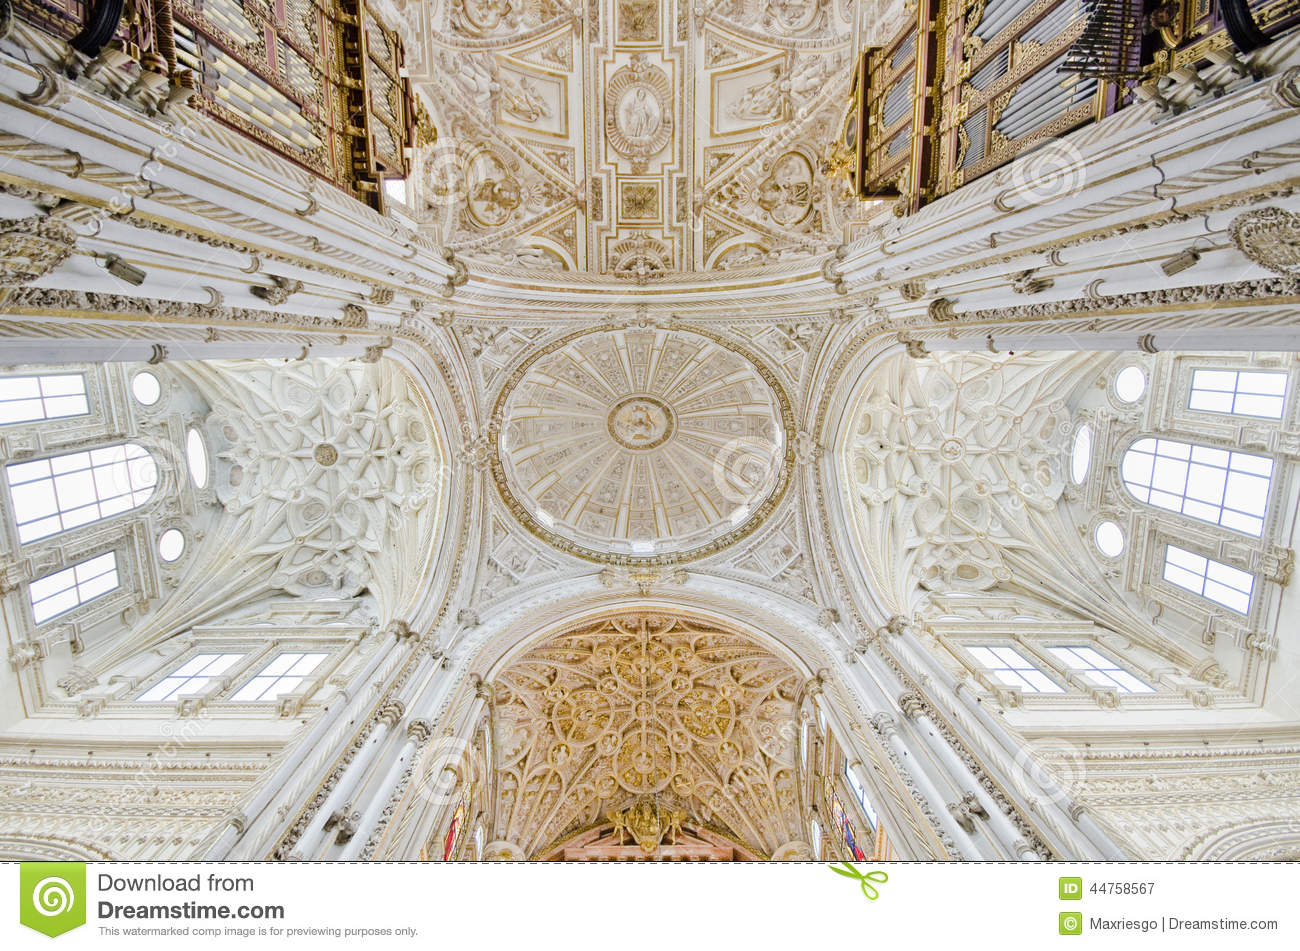 Mezquita de cordoba cathedral wide angle image stock for Interior mezquita de cordoba